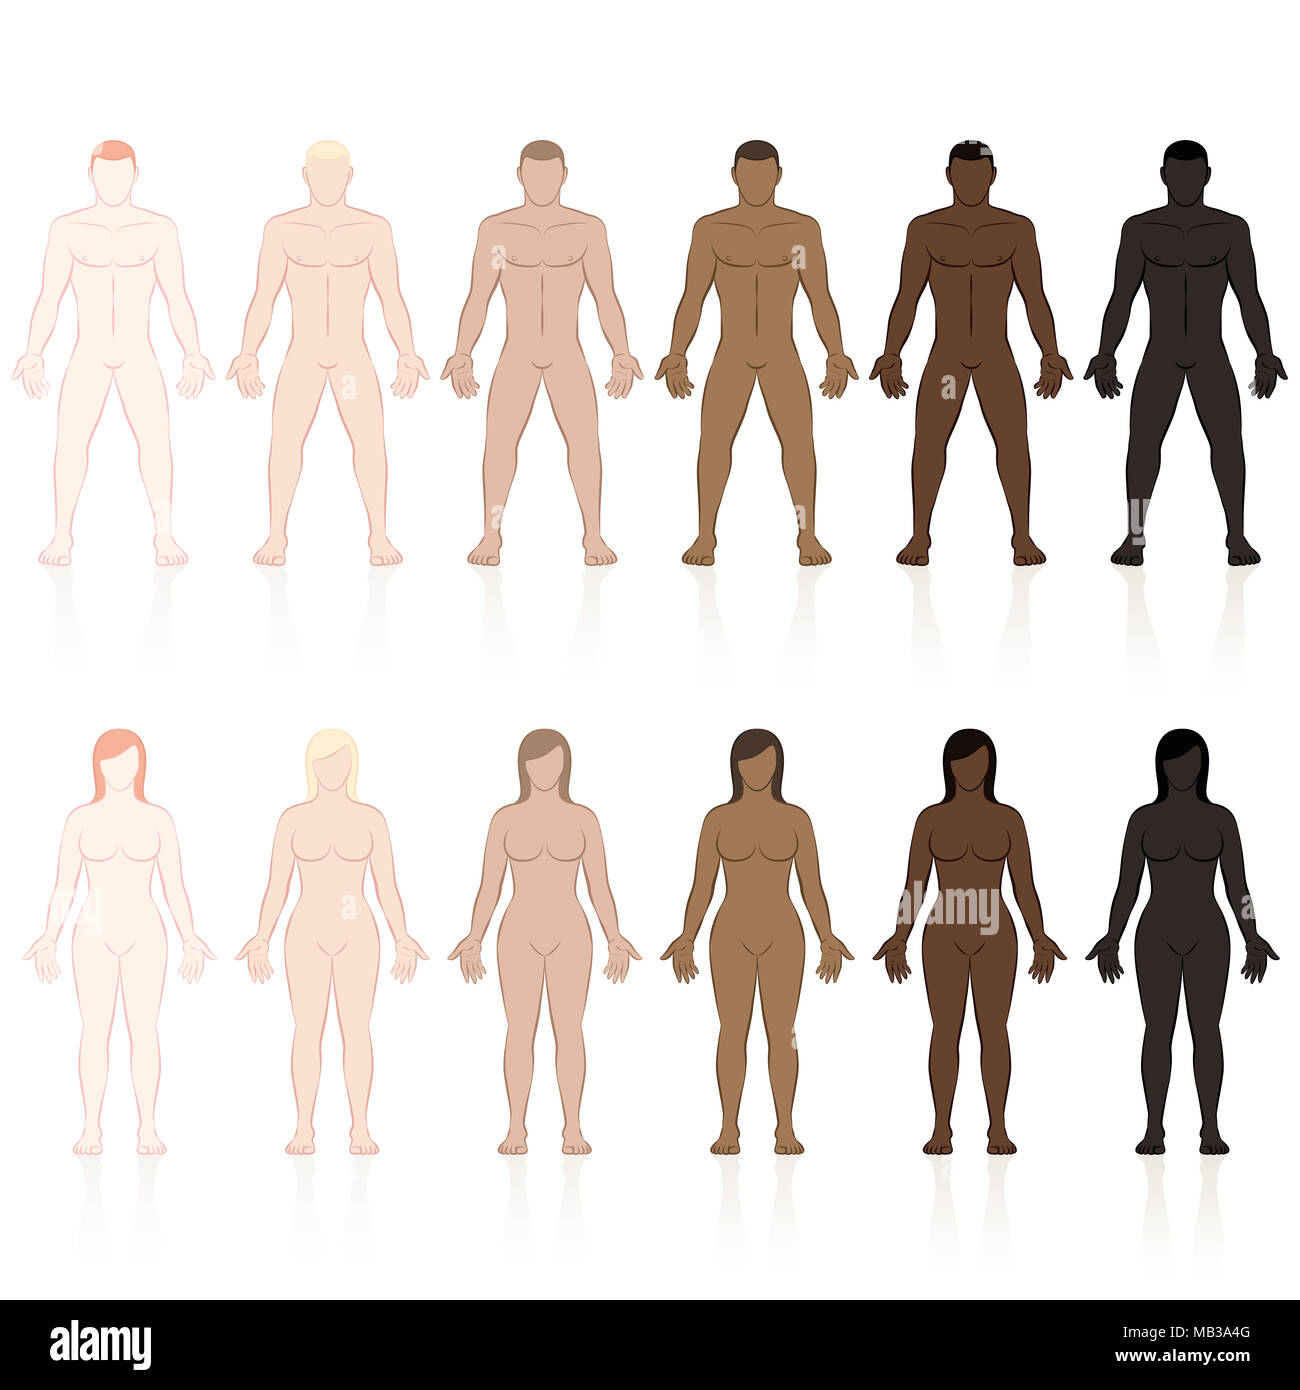 Male and female bodies with different skin types. Very fair, fair, medium, olive, brown and black. Isolated vector illustration on white background. - Stock Image